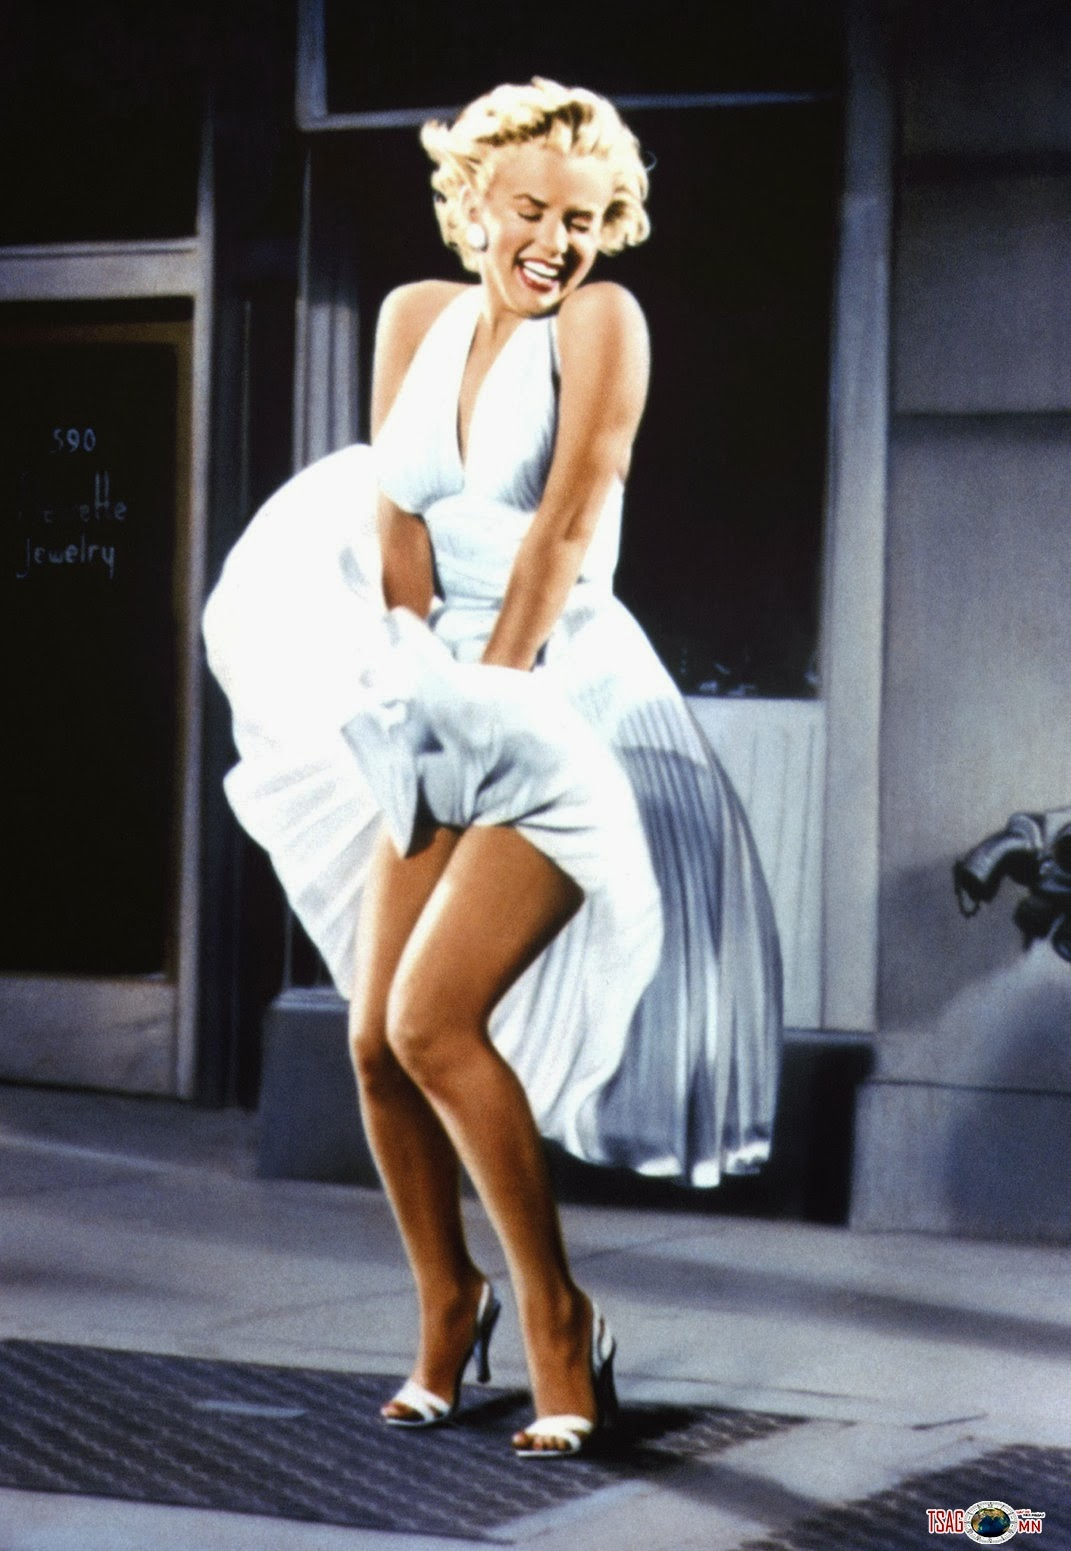 Marilyn Monroe in the iconic white dress.